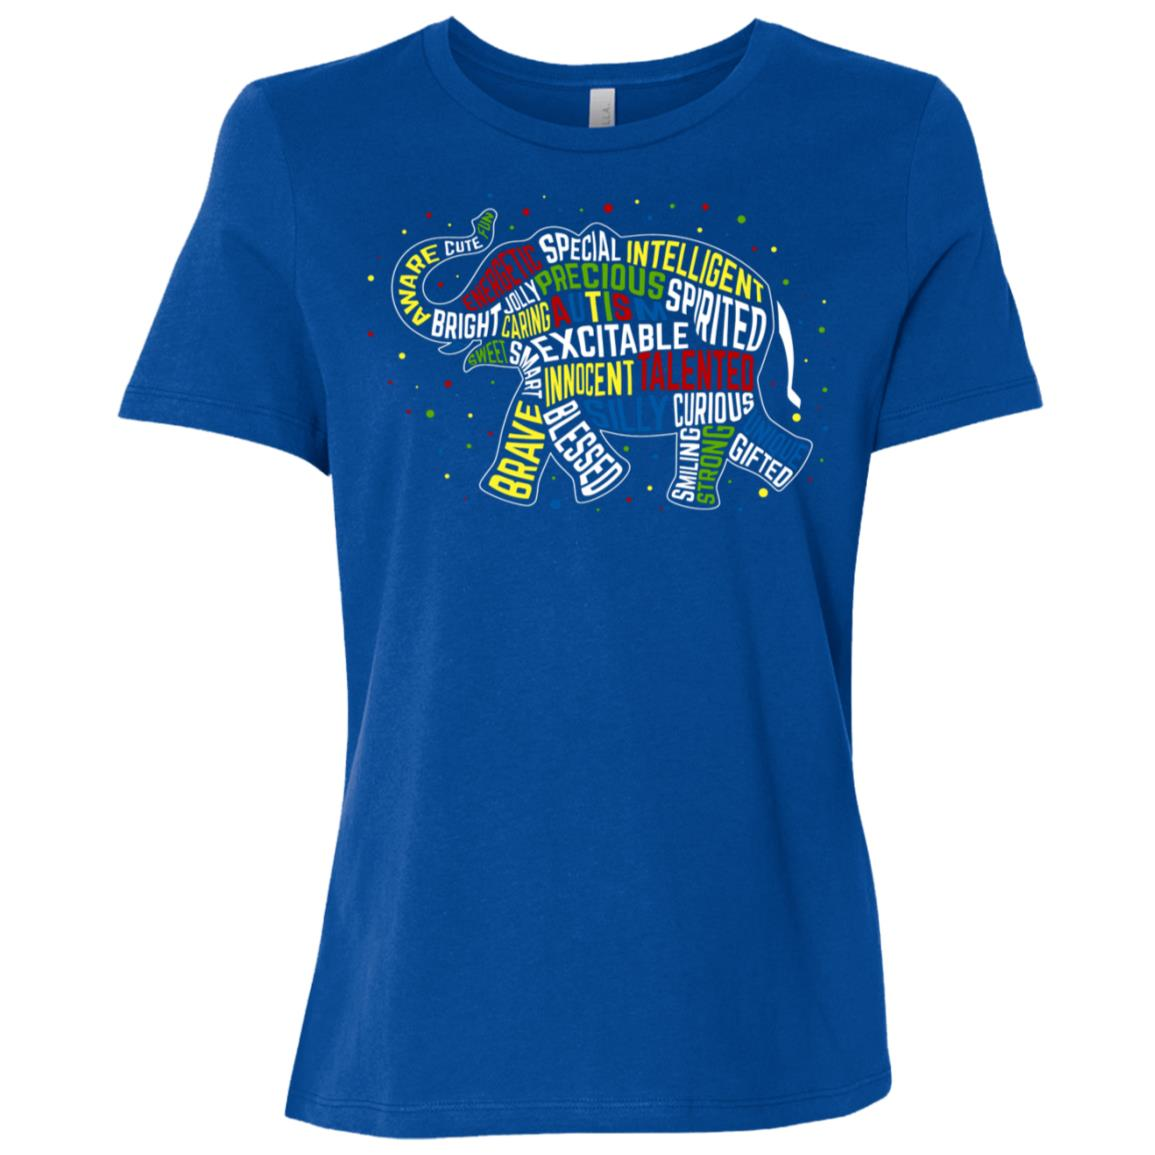 Are You Looking for an Autism Awareness E Women Short Sleeve T-Shirt